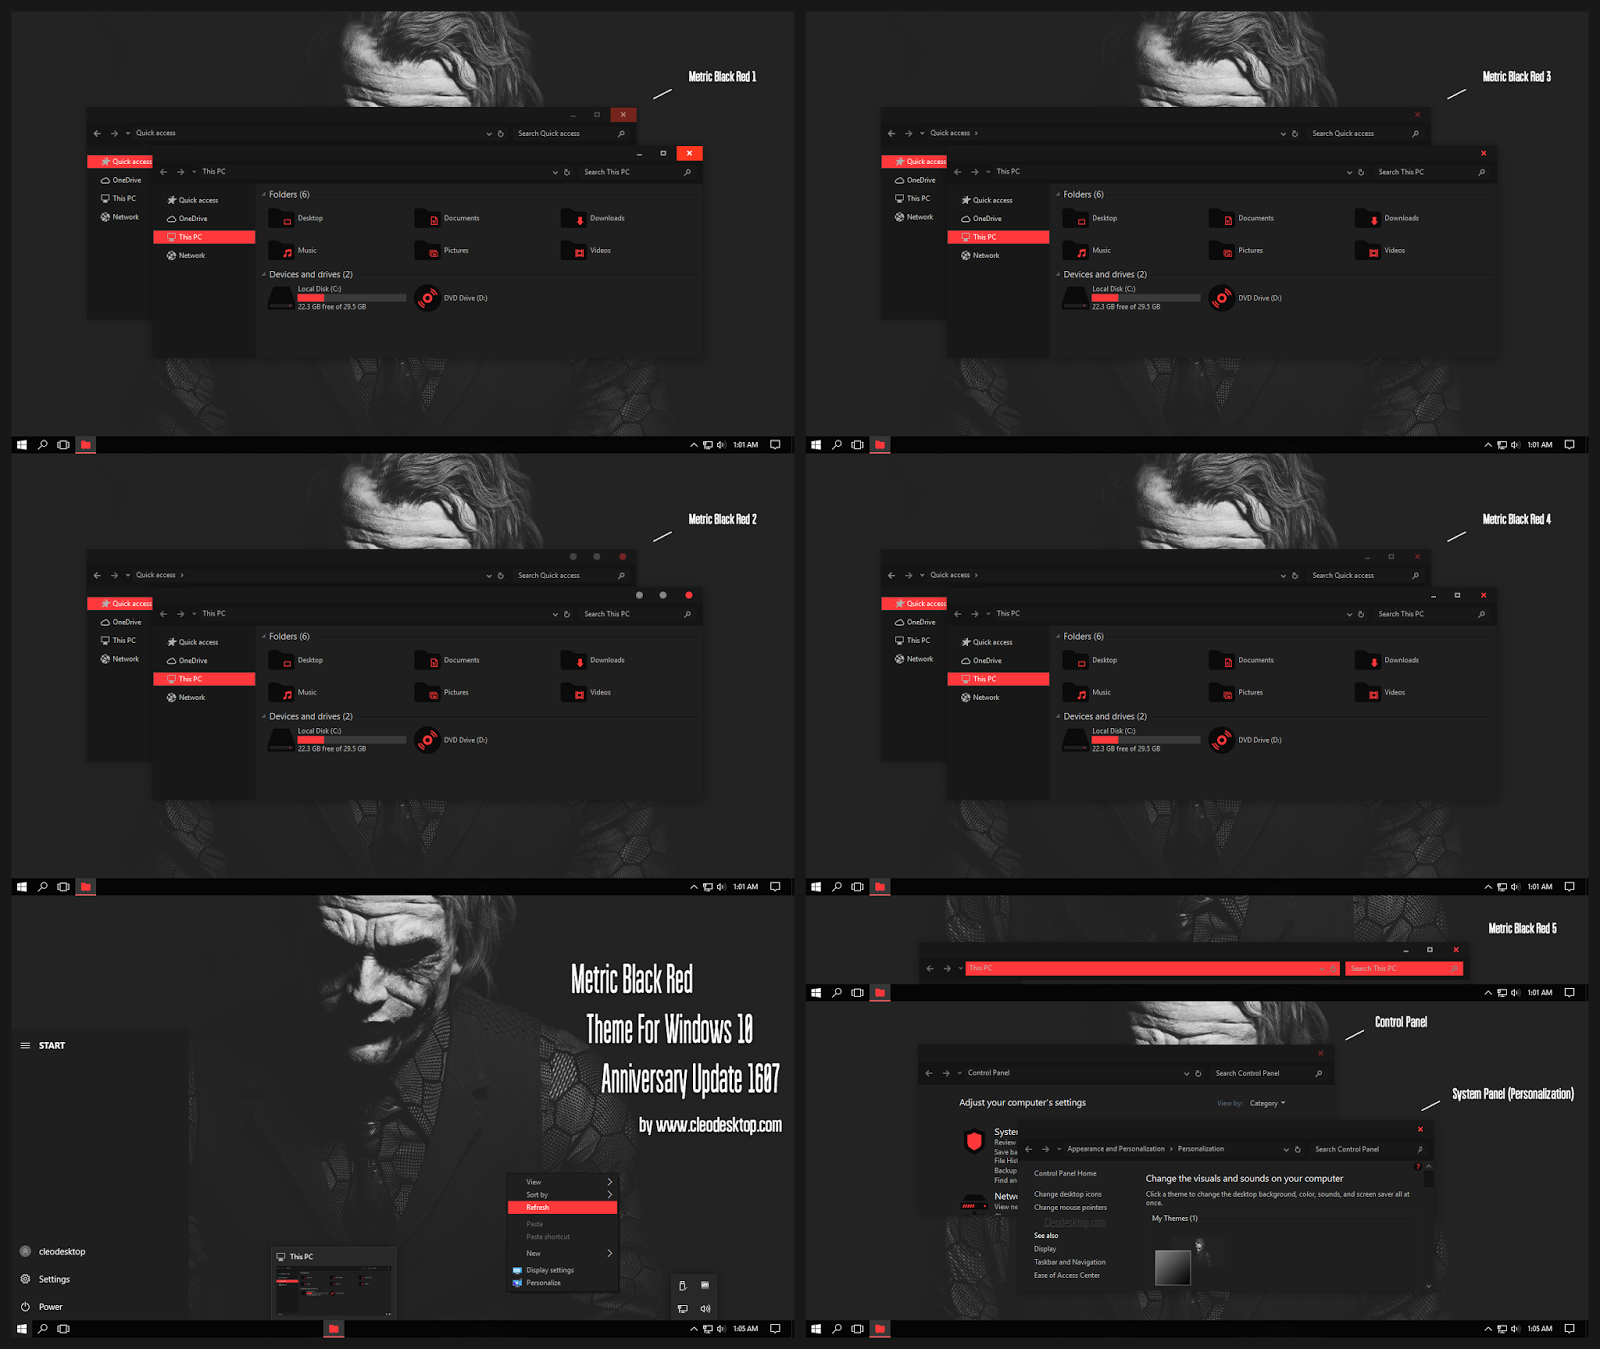 Metric+Black+Red+Preview+For+Win10.png (1600×1349)